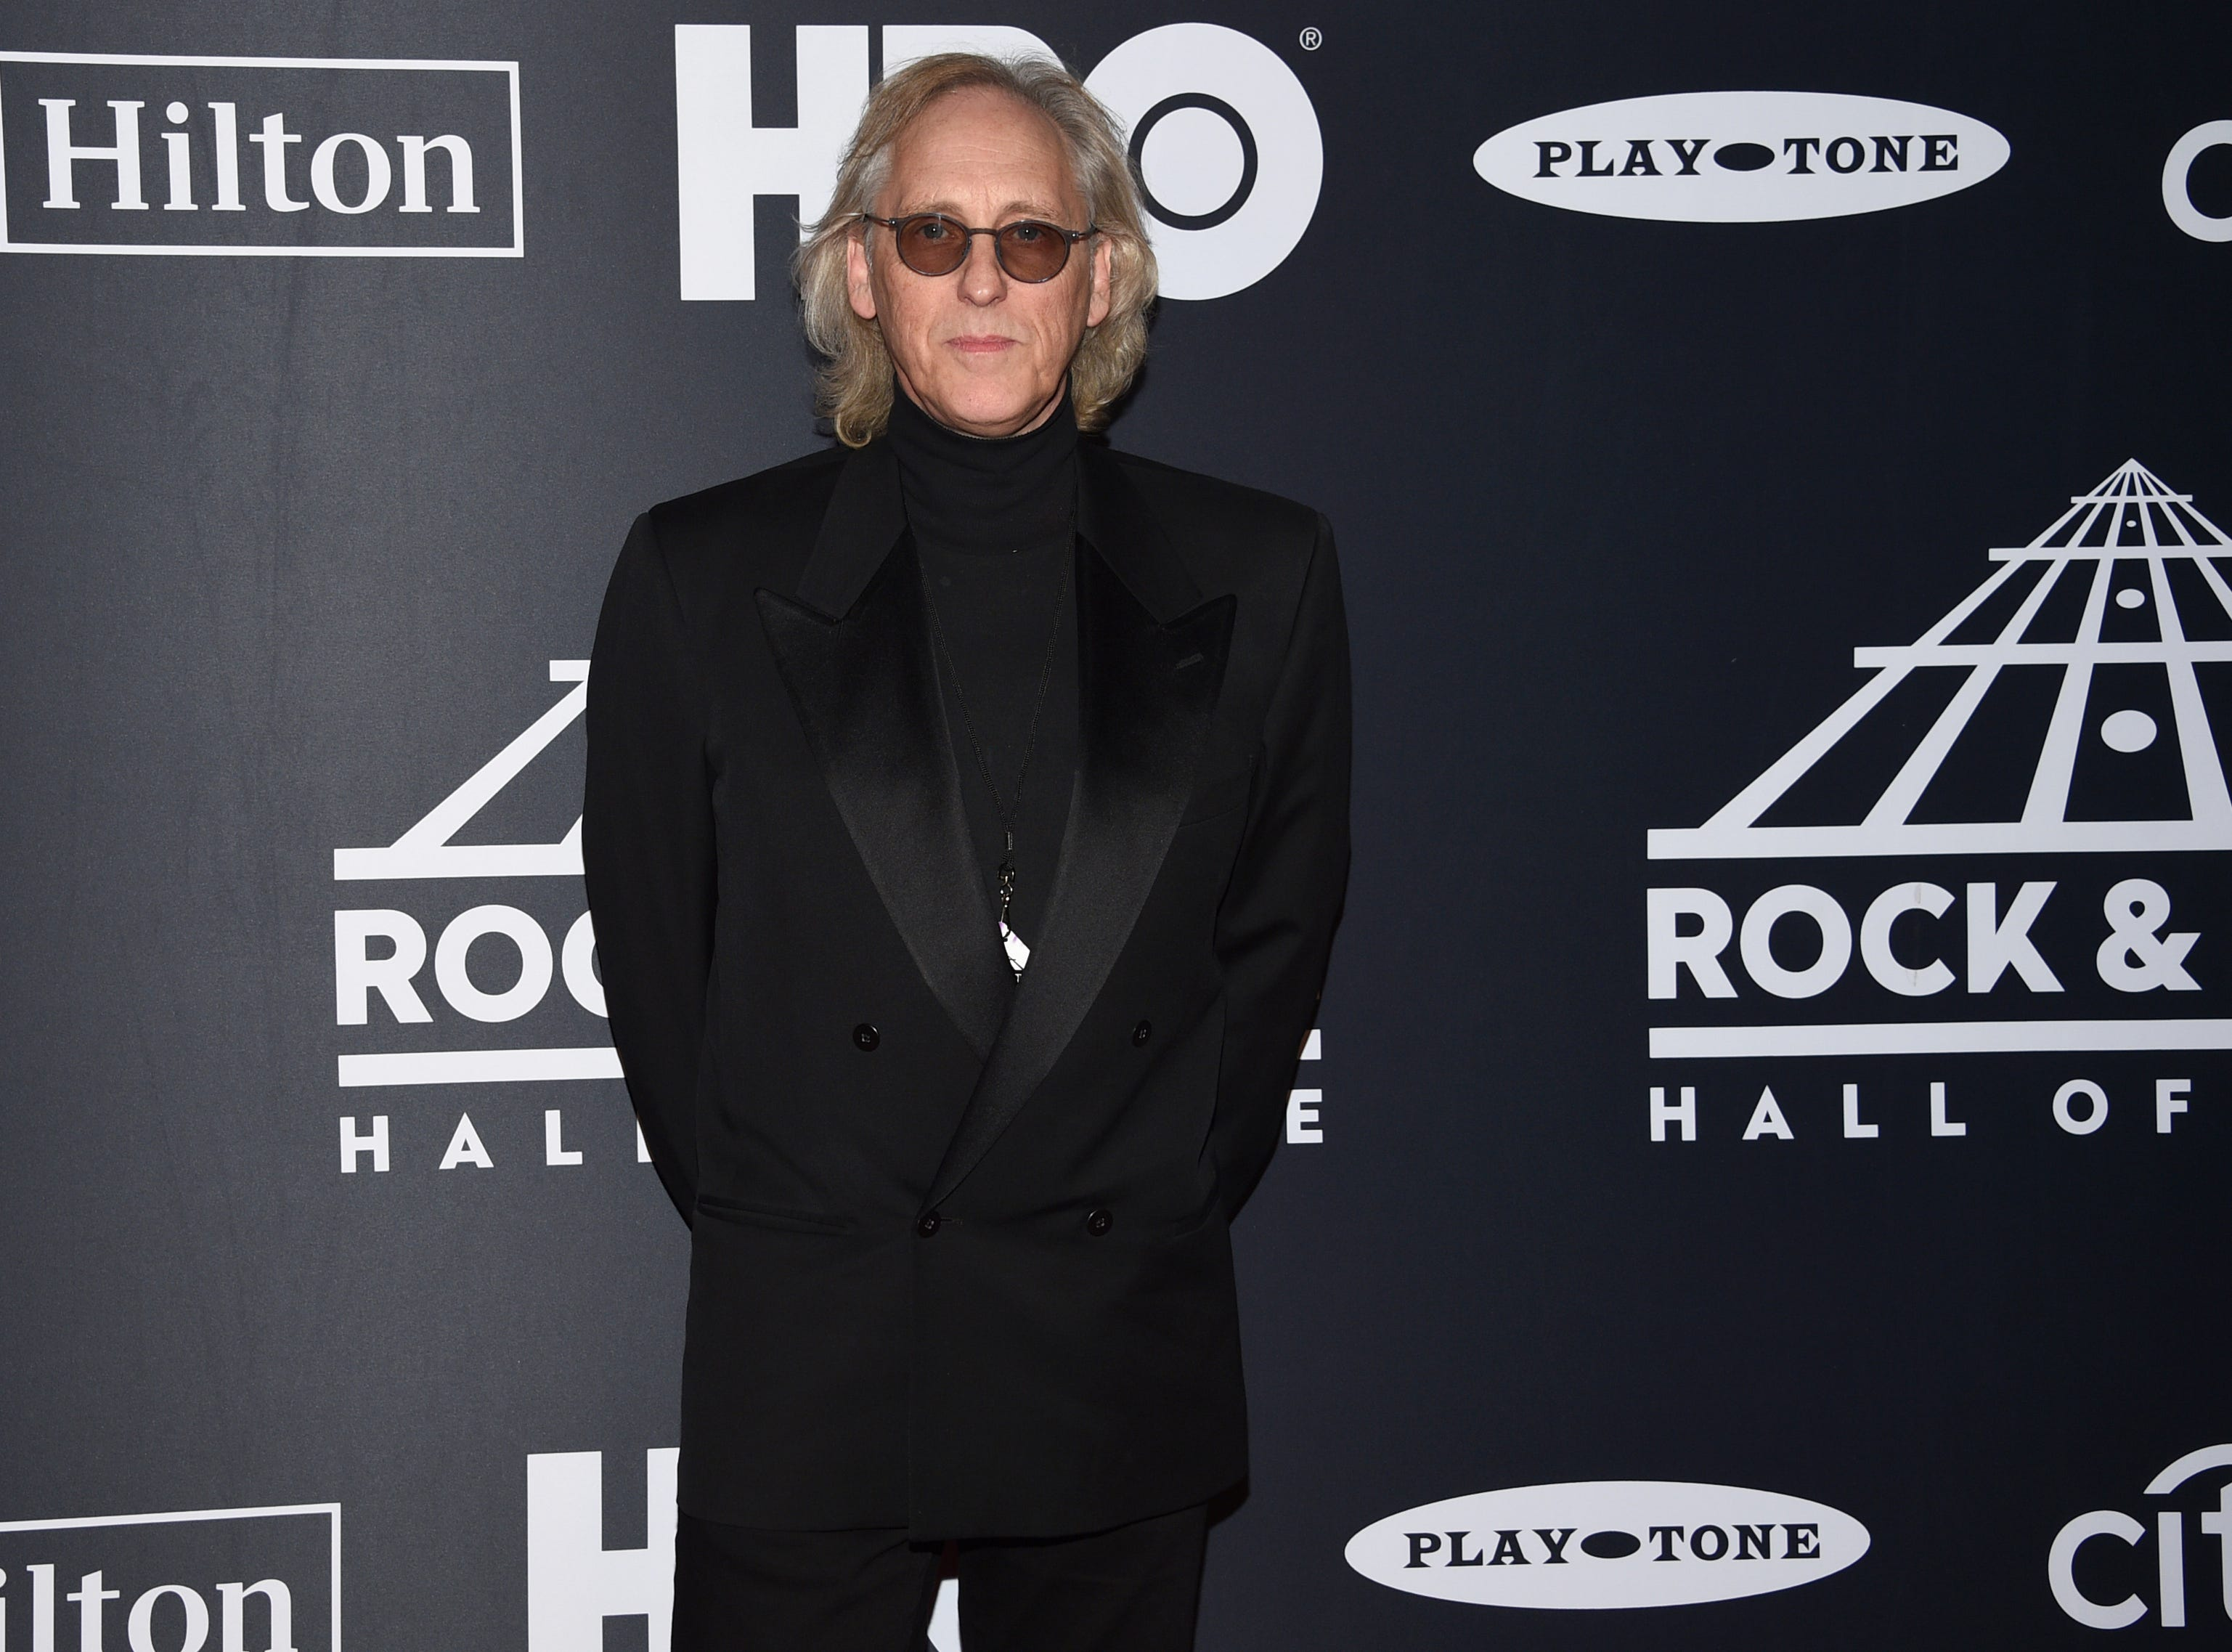 Eddie Jobson, of Roxy Music, arrives at the Rock & Roll Hall of Fame induction ceremony at the Barclays Center on Friday, March 29, 2019, in New York. (Photo by Evan Agostini/Invision/AP) ORG XMIT: NYPM112